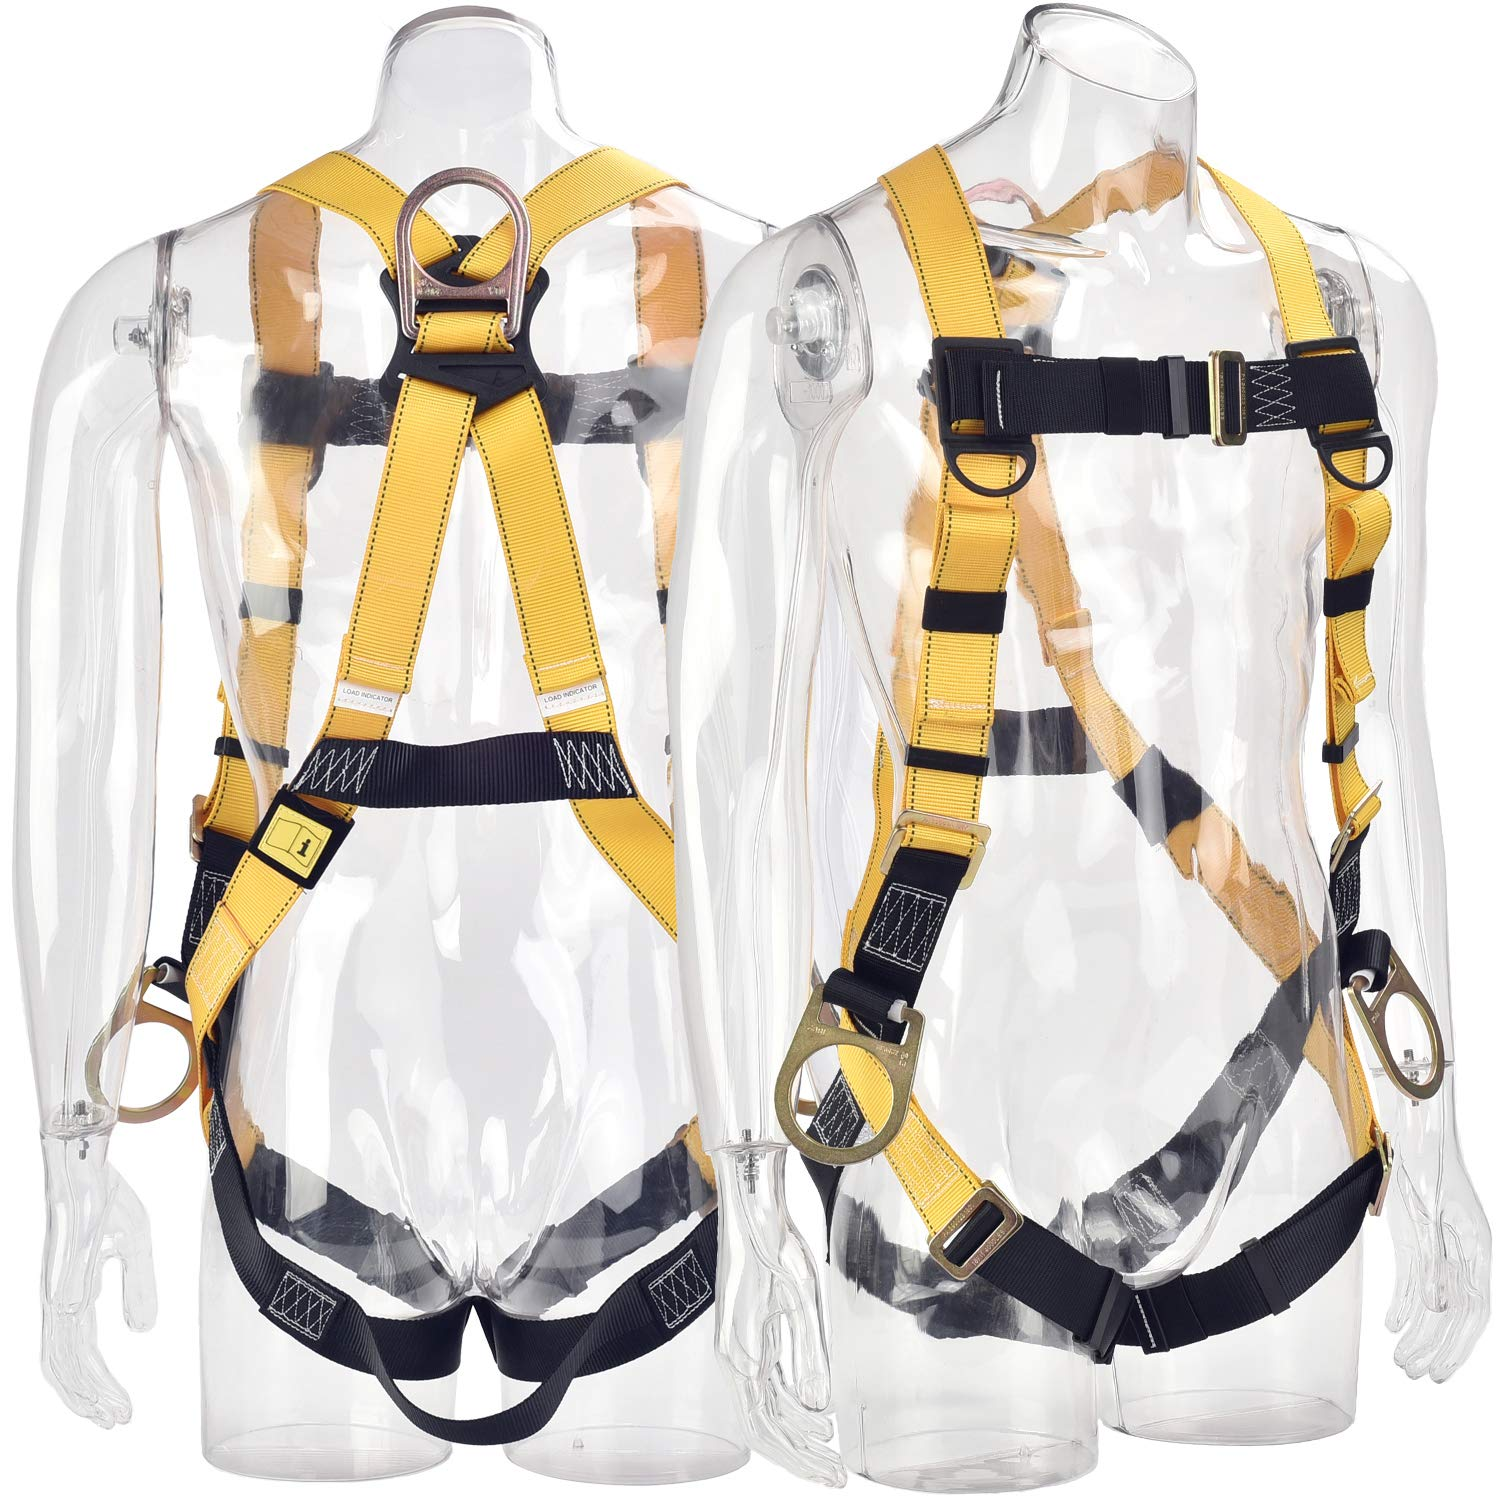 WELKFORDER 3D-Rings Industrial Fall Protection Full Body Safety Harness ANSI Certified Personal Protection Equipment